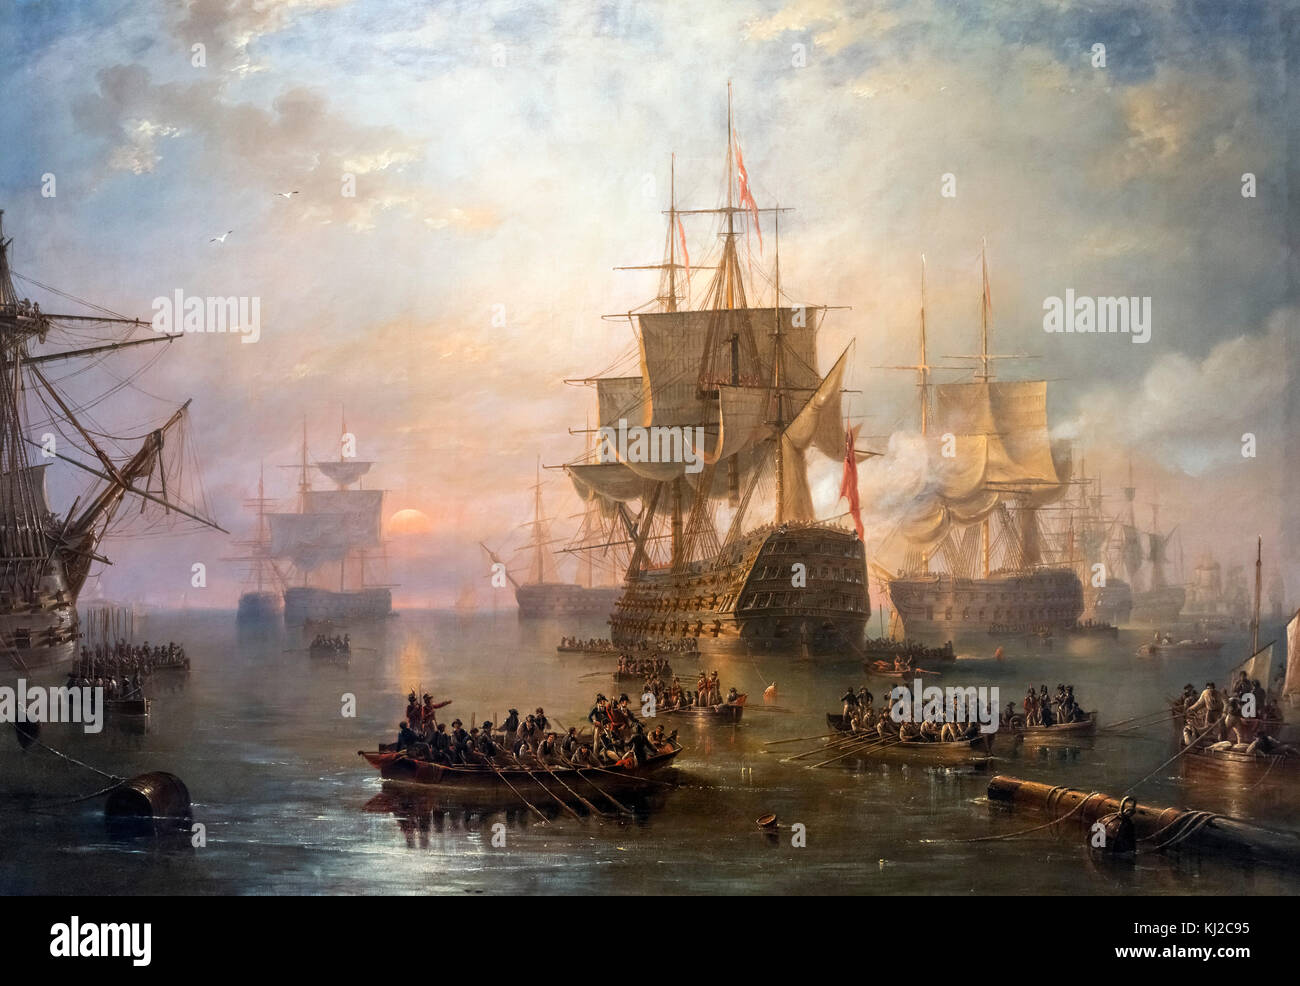 'HMS Victory off the Isle of Wight' by John Winston Carmichael, oil on canvas, 1847. The painting shows - Stock Image